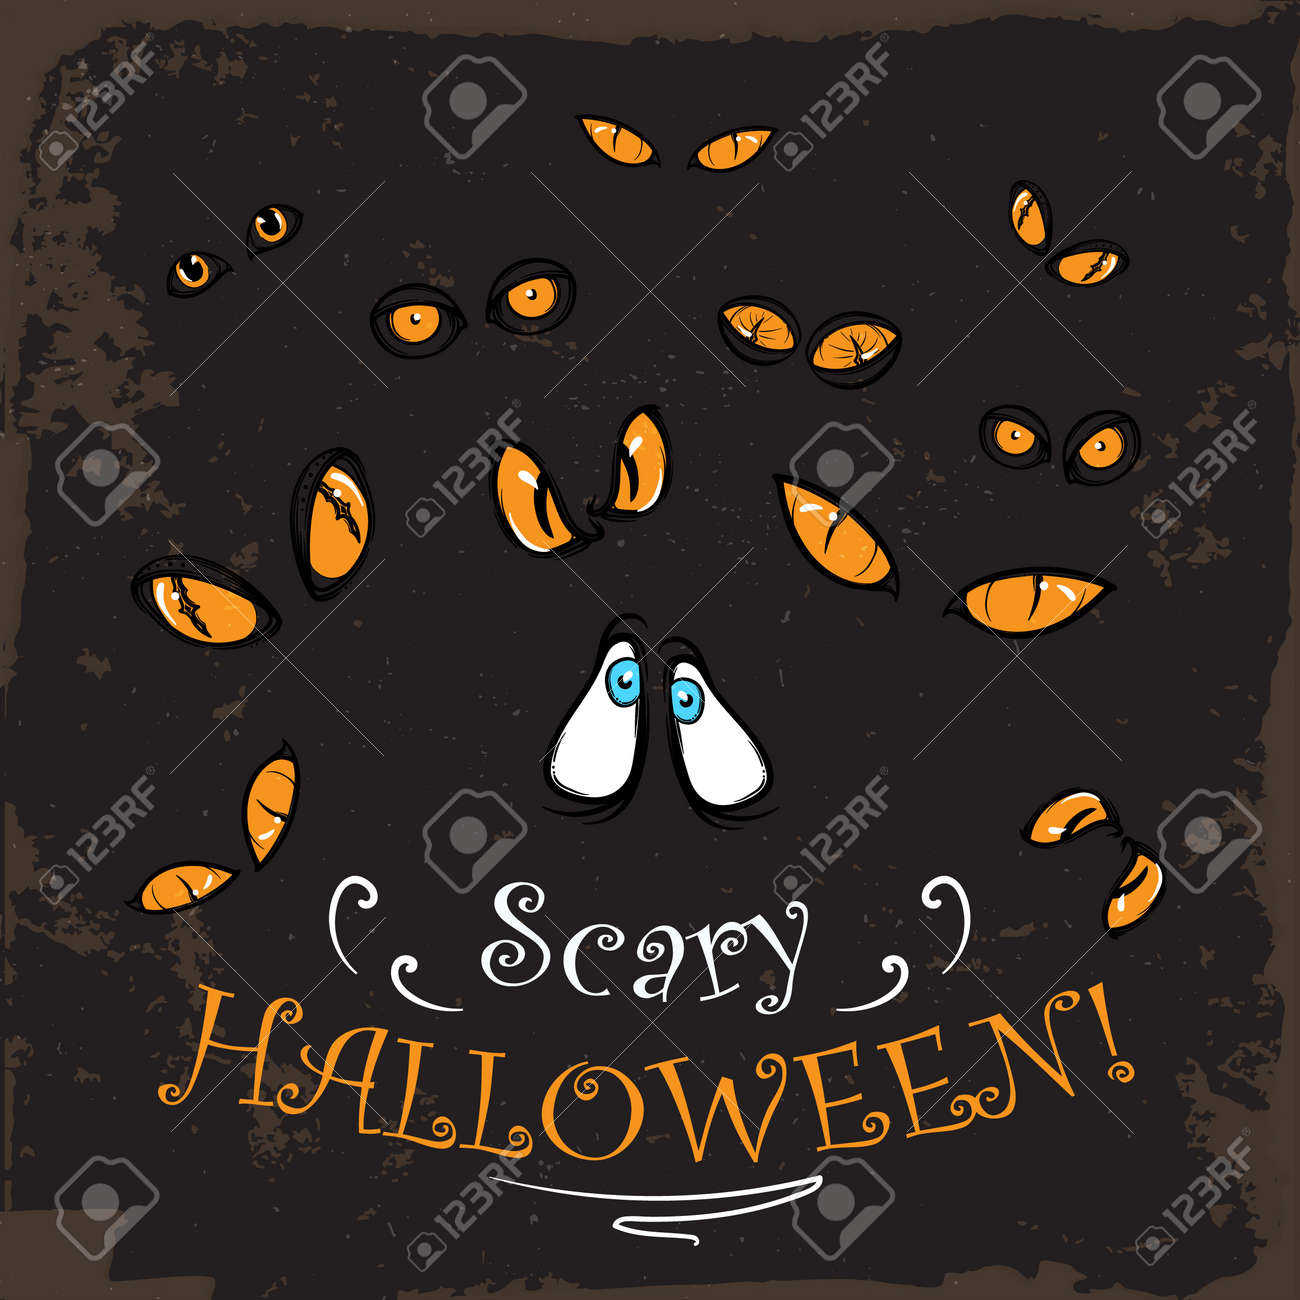 Scary Yellow Eyes Watching From The Dark. Spooky Halloween Greeting Card,  Print Or Party